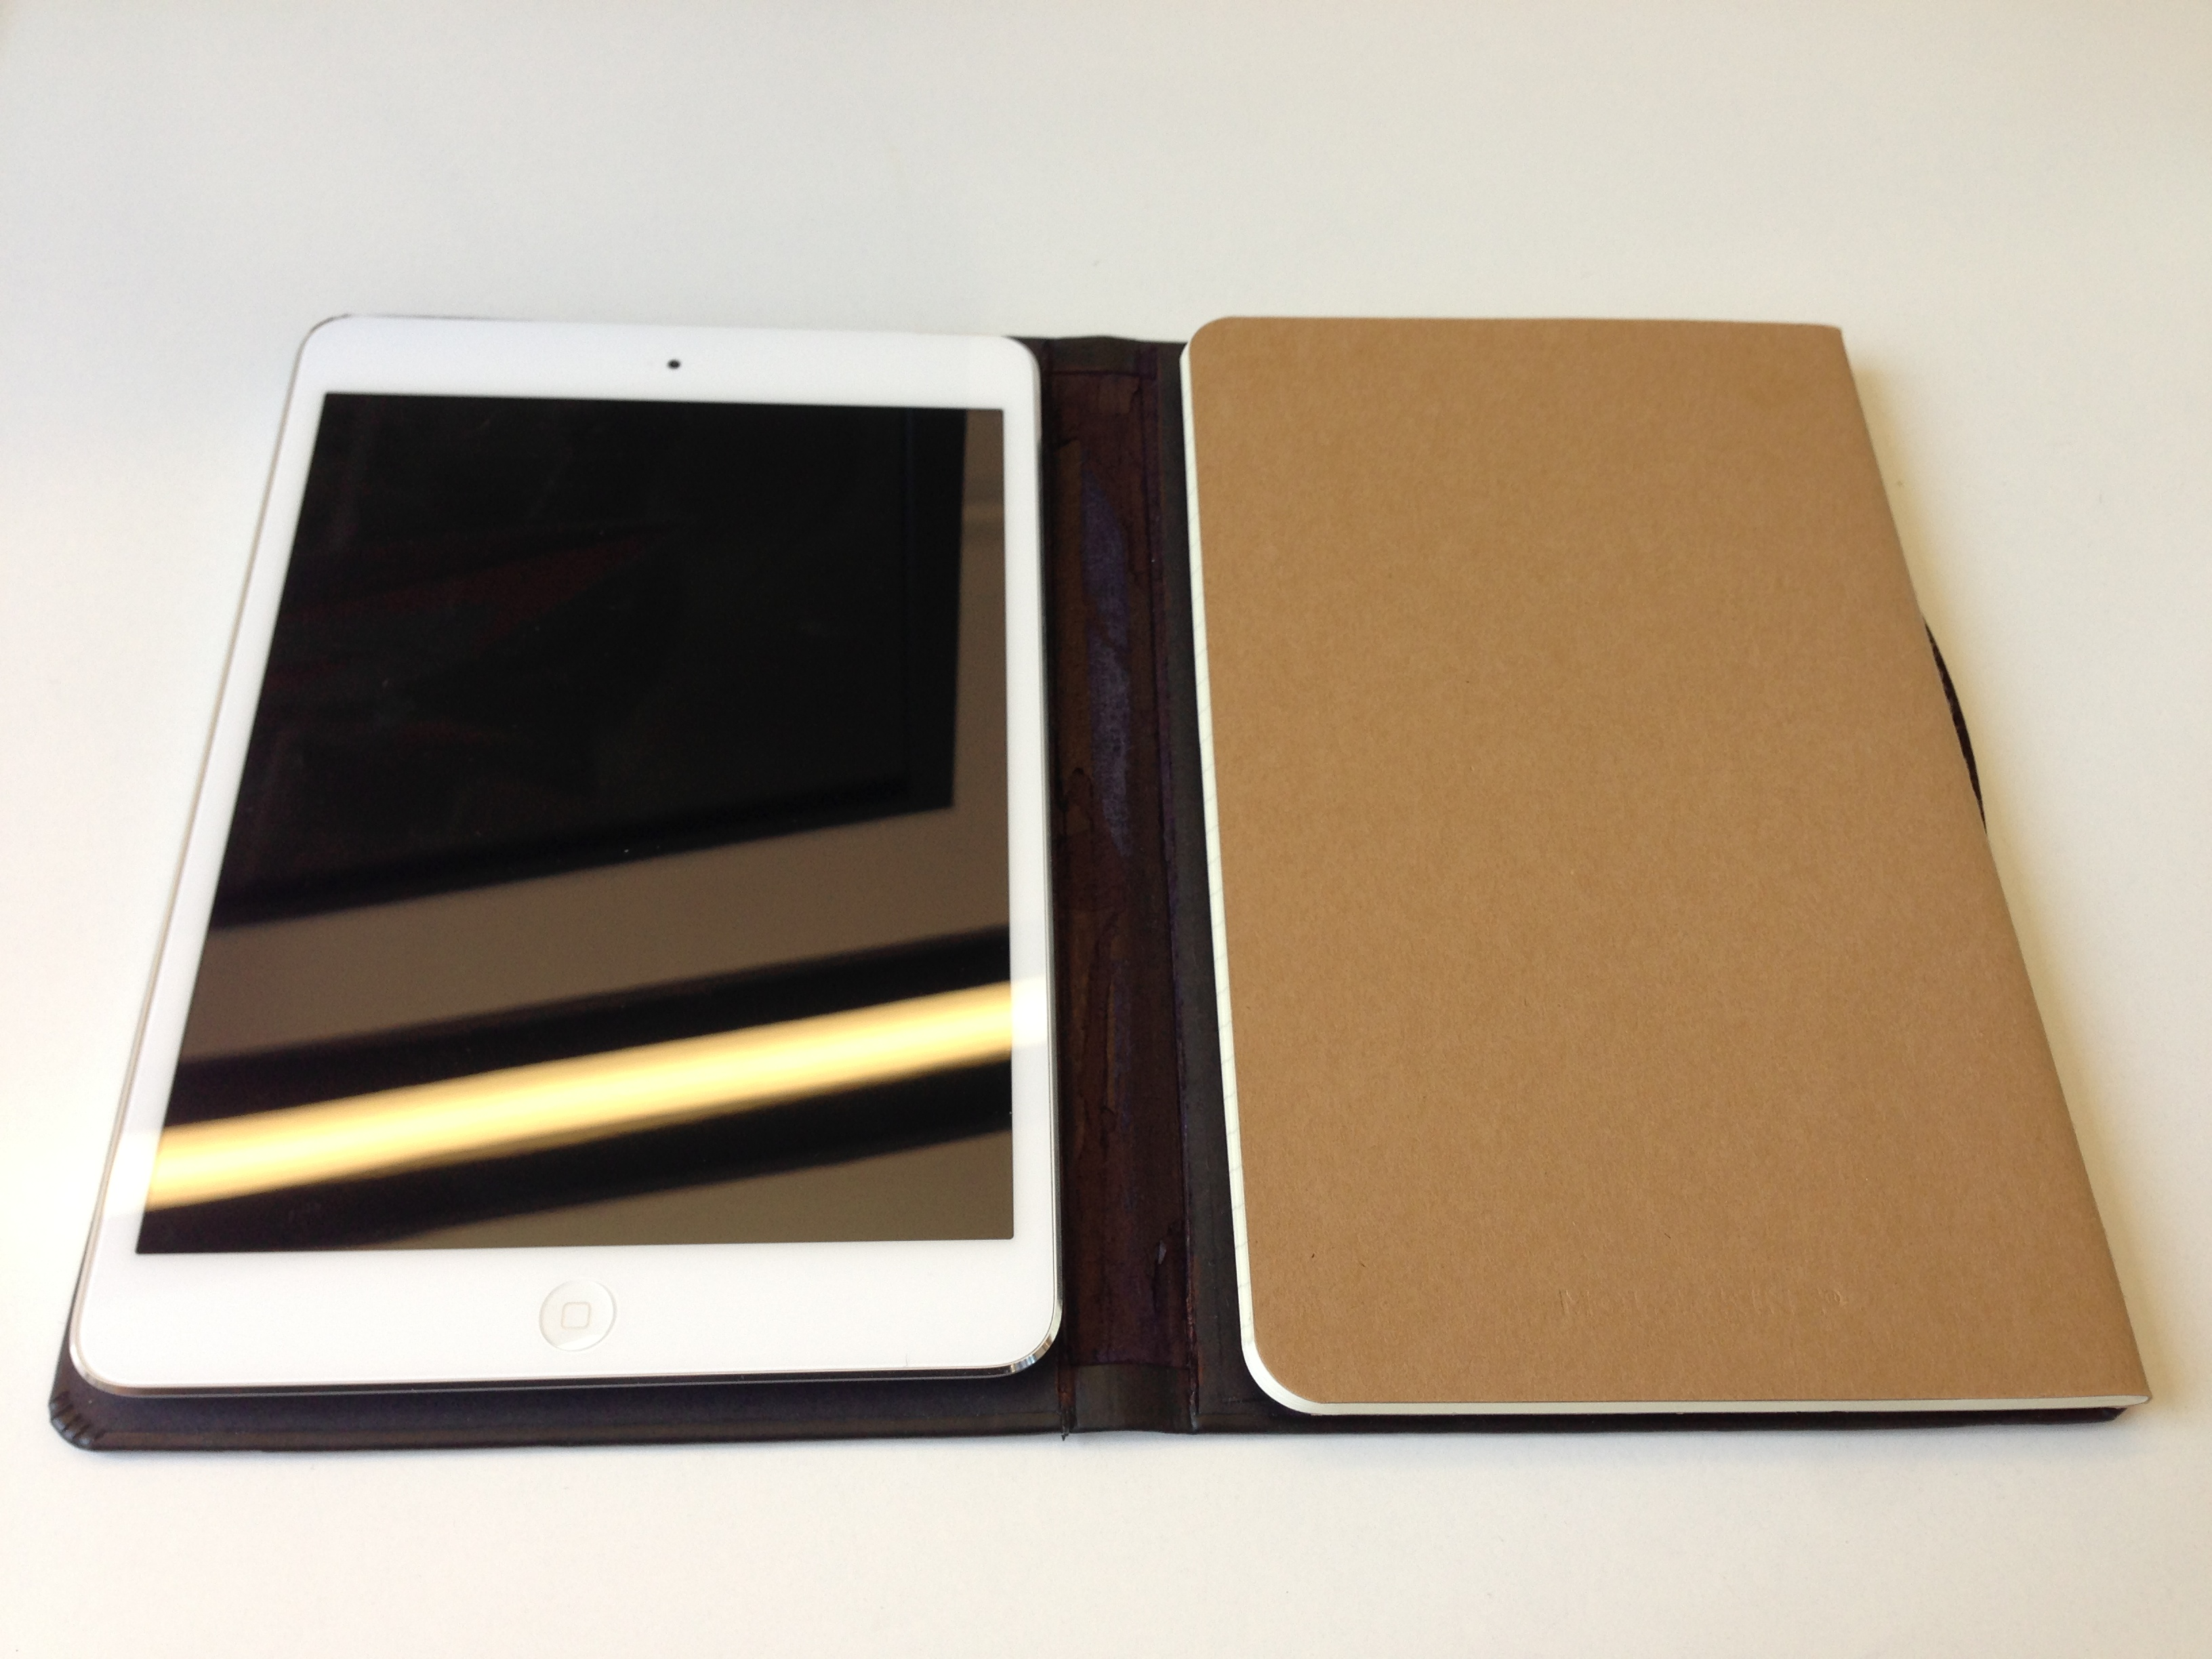 on sale f4d42 1f757 iPad mini - Couldn't find my perfect case, so made my own; Moleskine ...